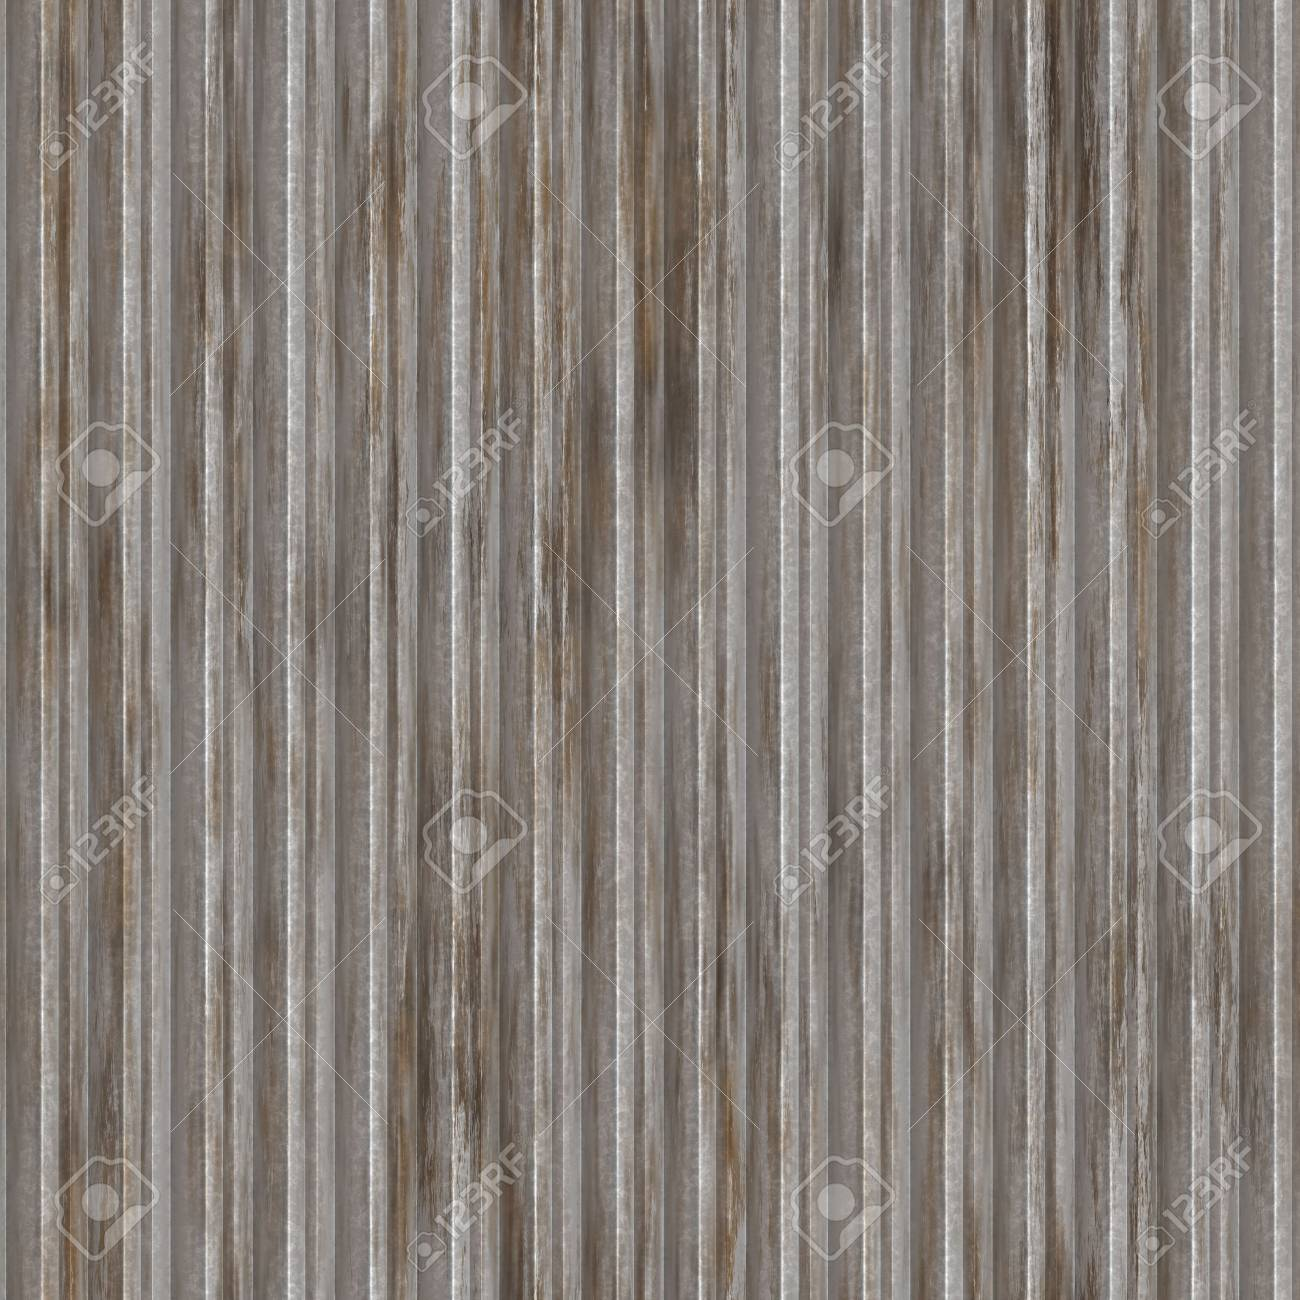 Corrugated metal ridged surface with corrosion seamless texture Stock Photo - 5685940